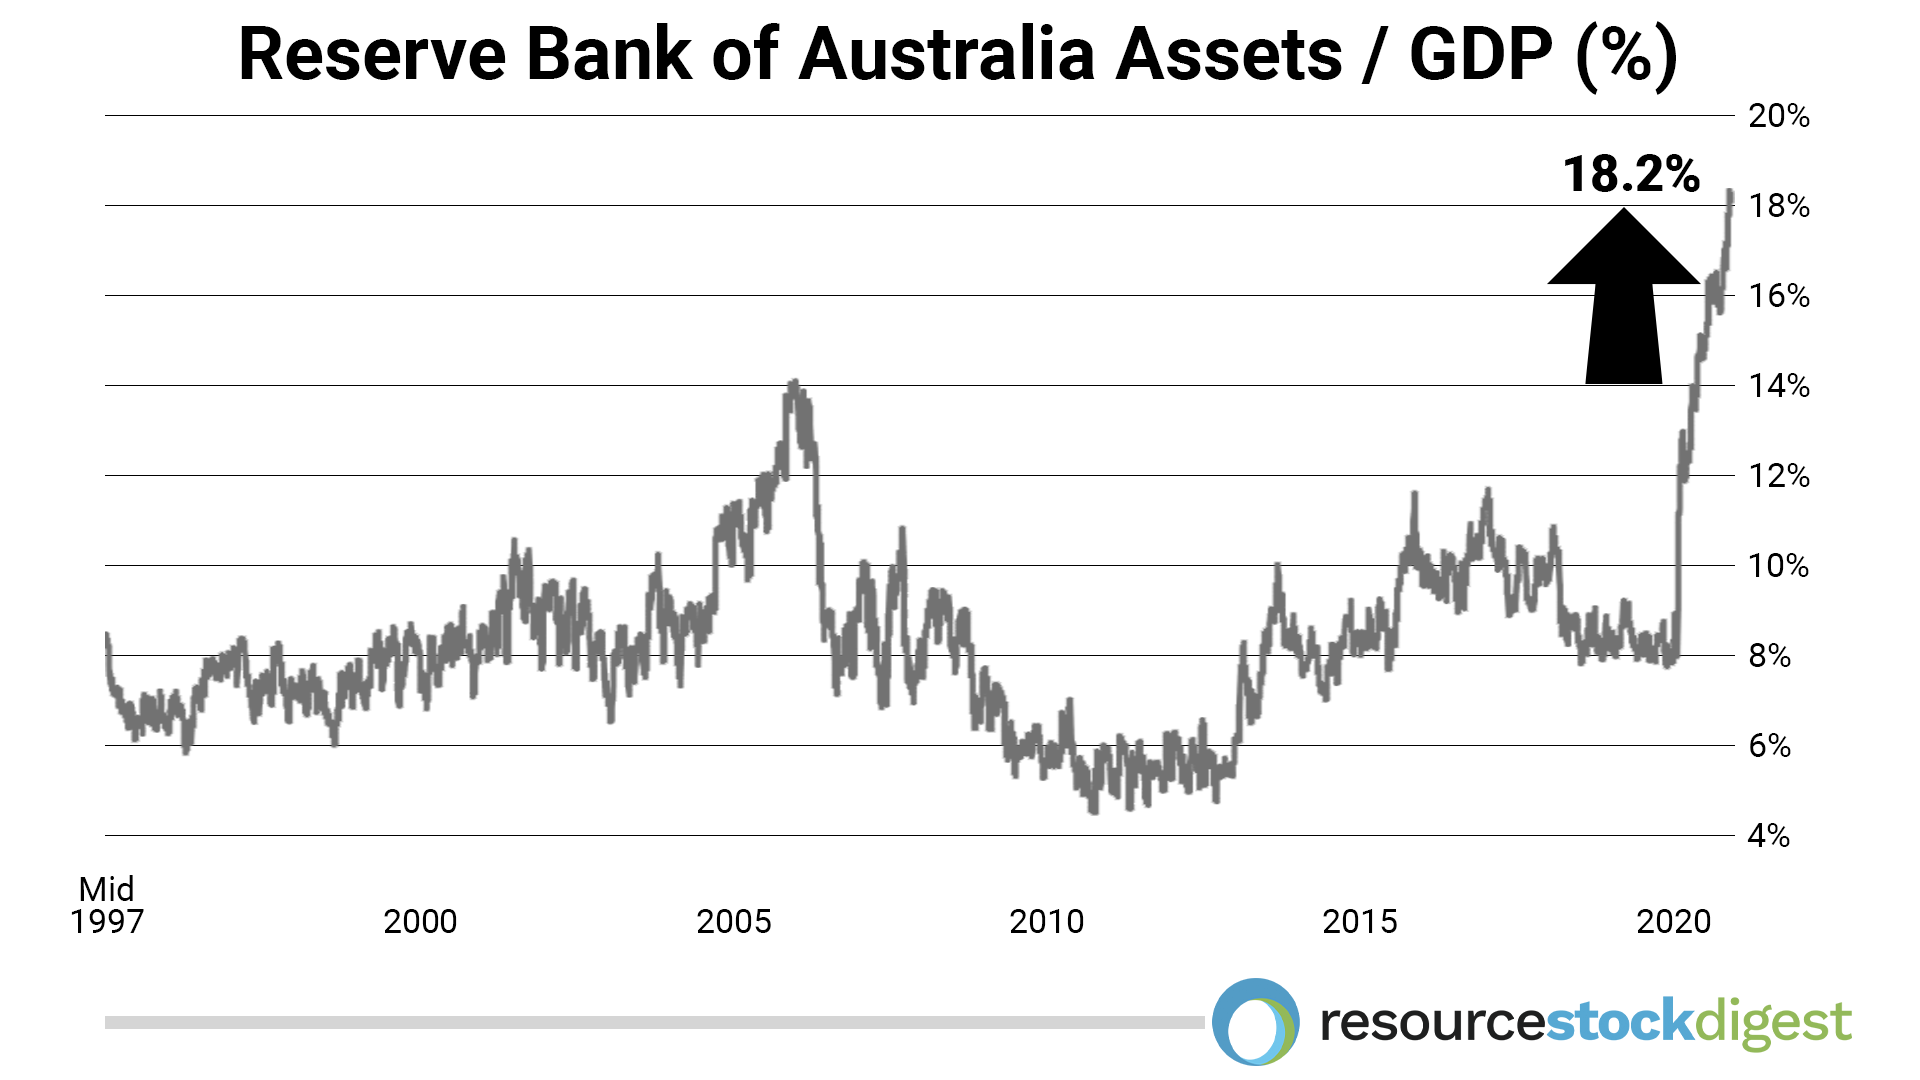 reserve-bank-of-australia-assets-gdp